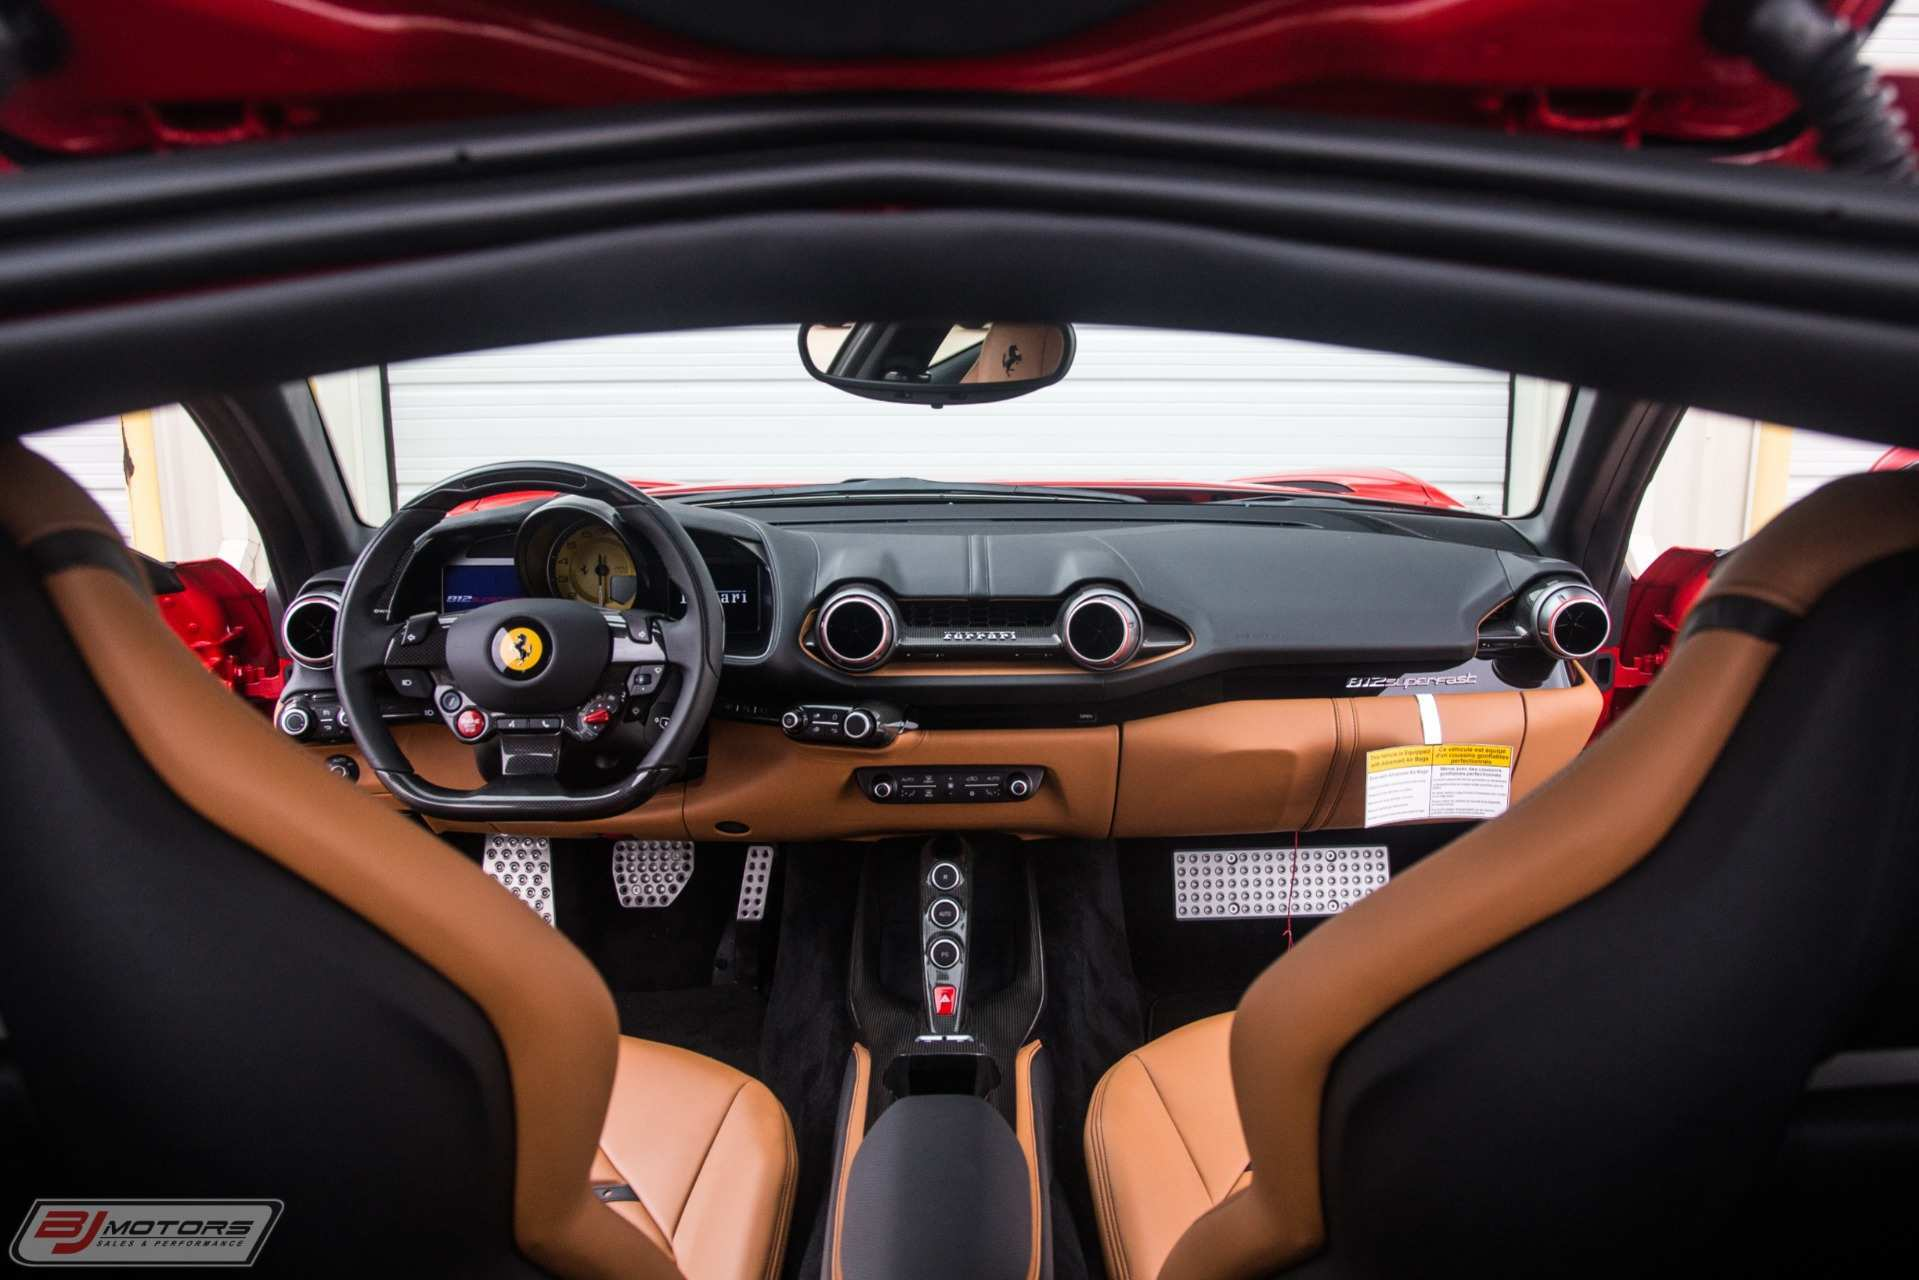 49 Great 2019 Ferrari Interior Images for 2019 Ferrari Interior